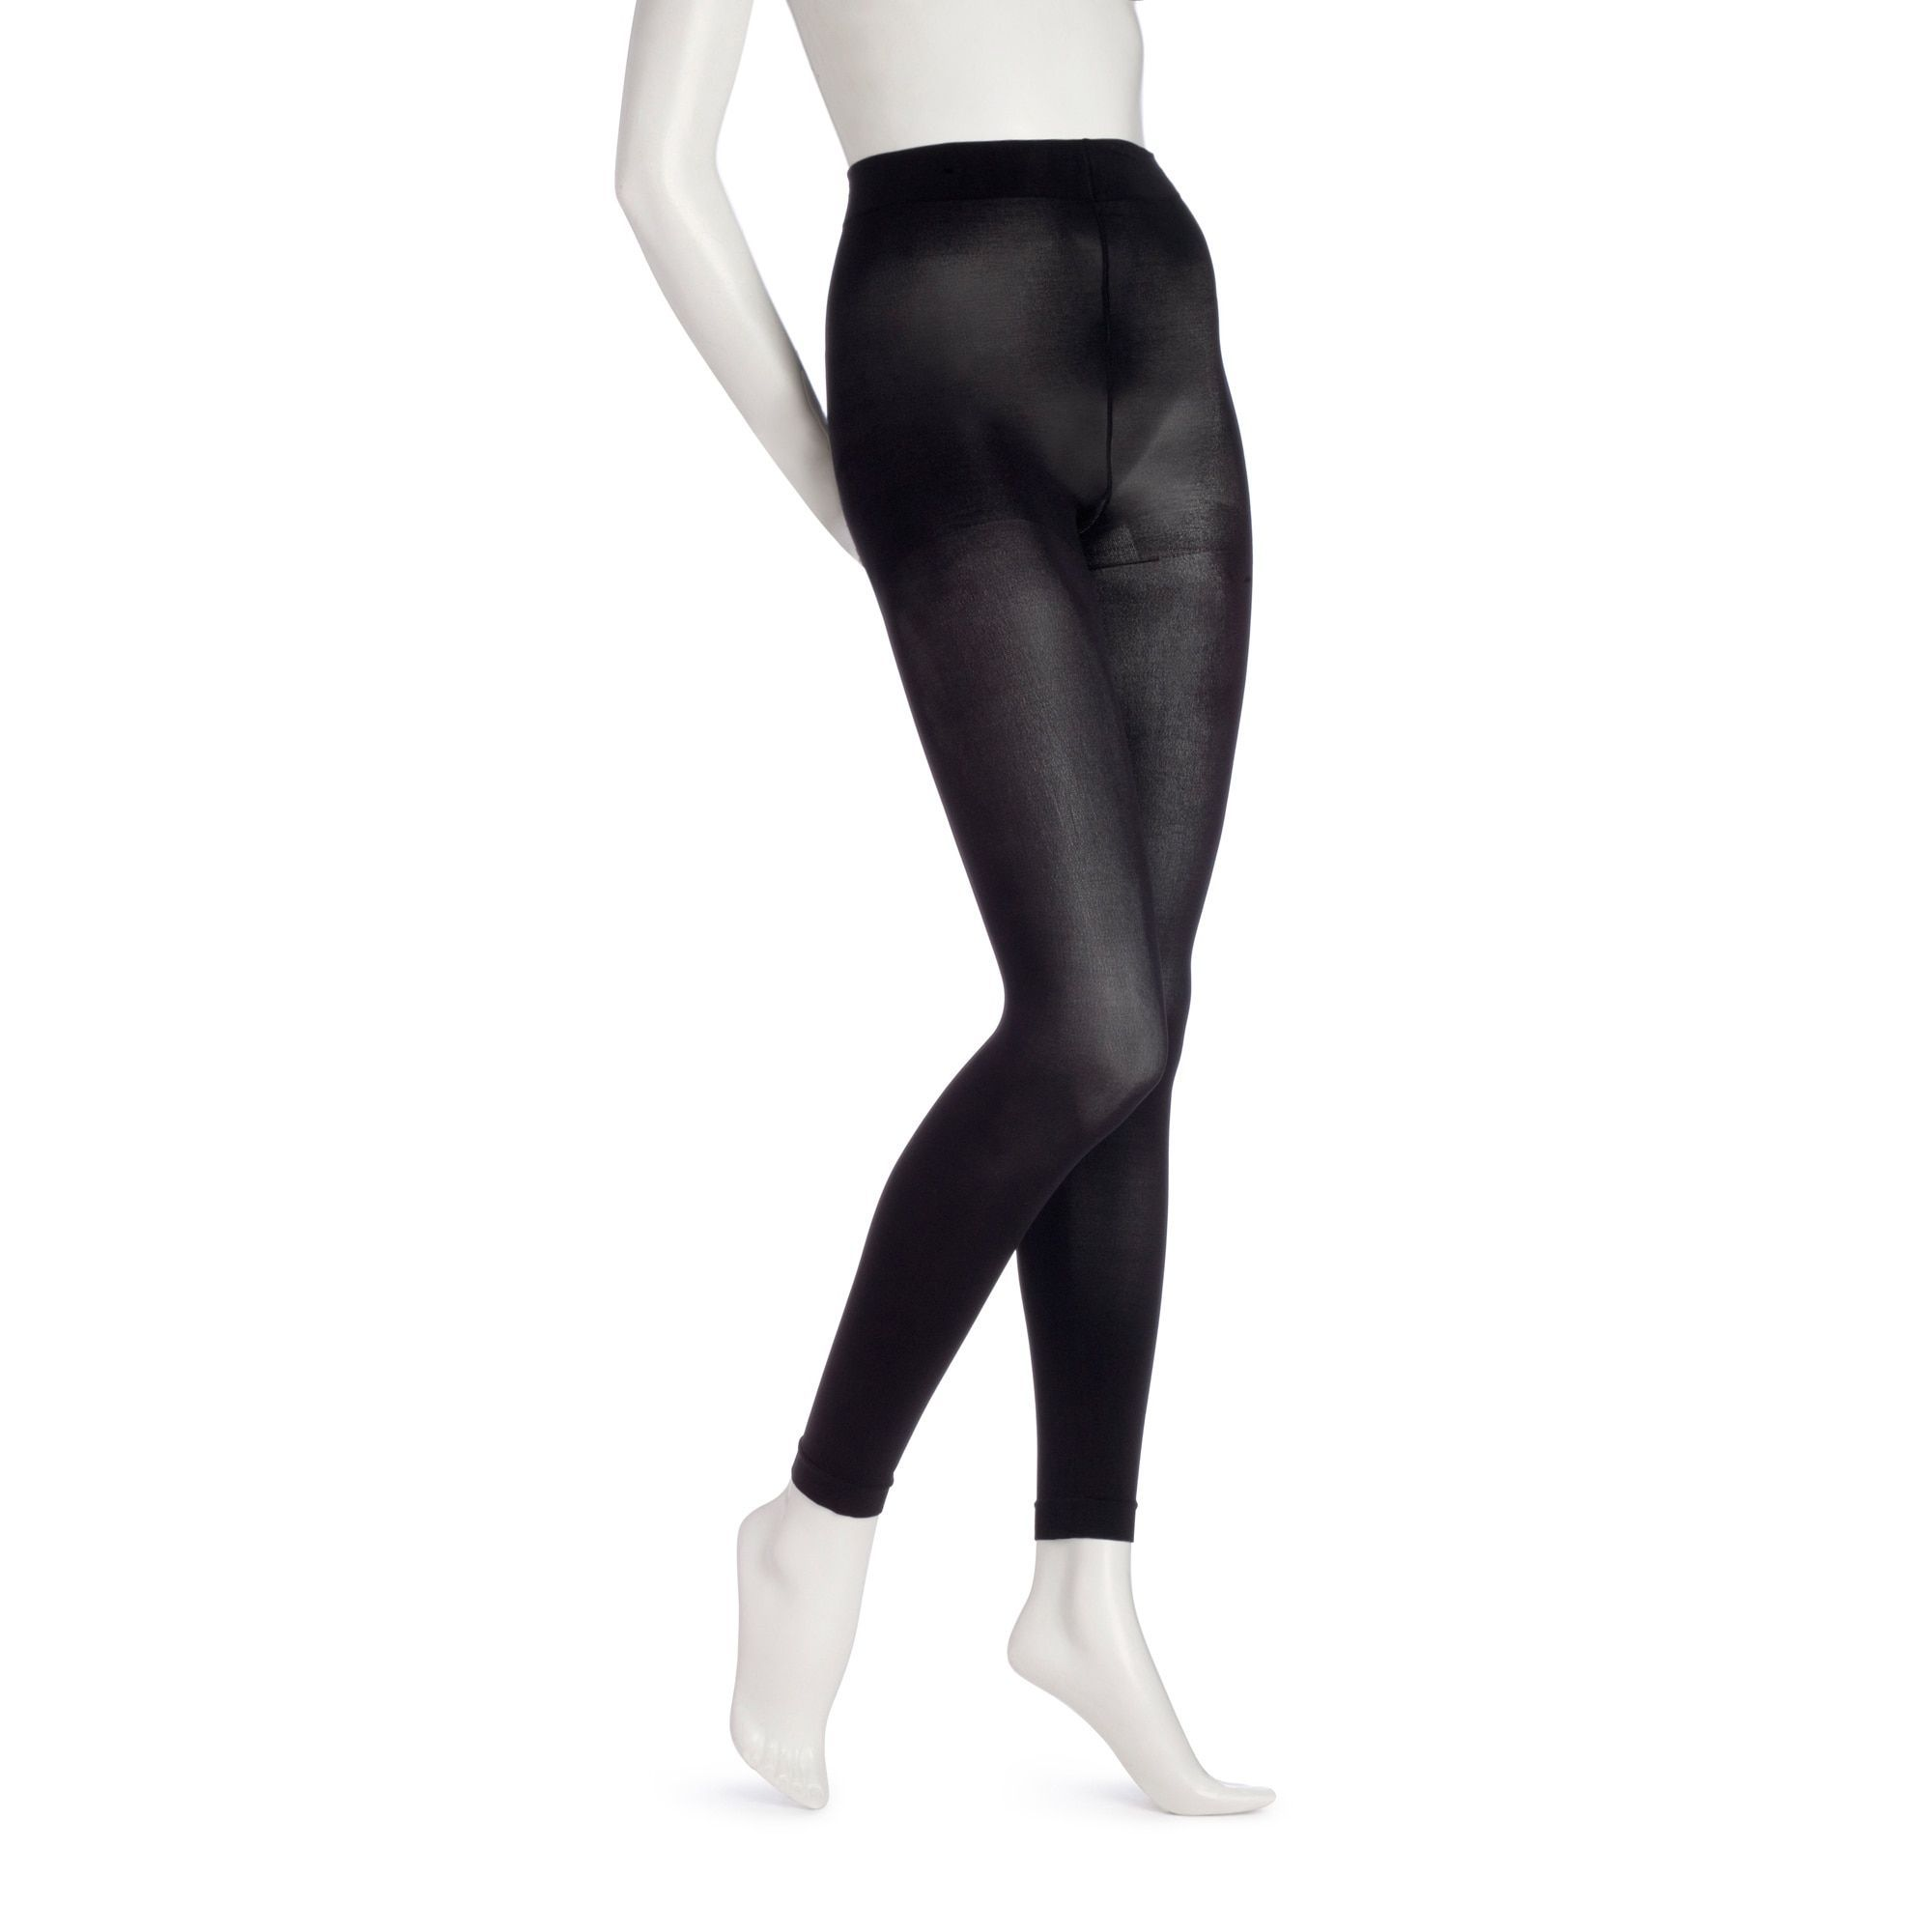 spandex tights opaque footless Striped